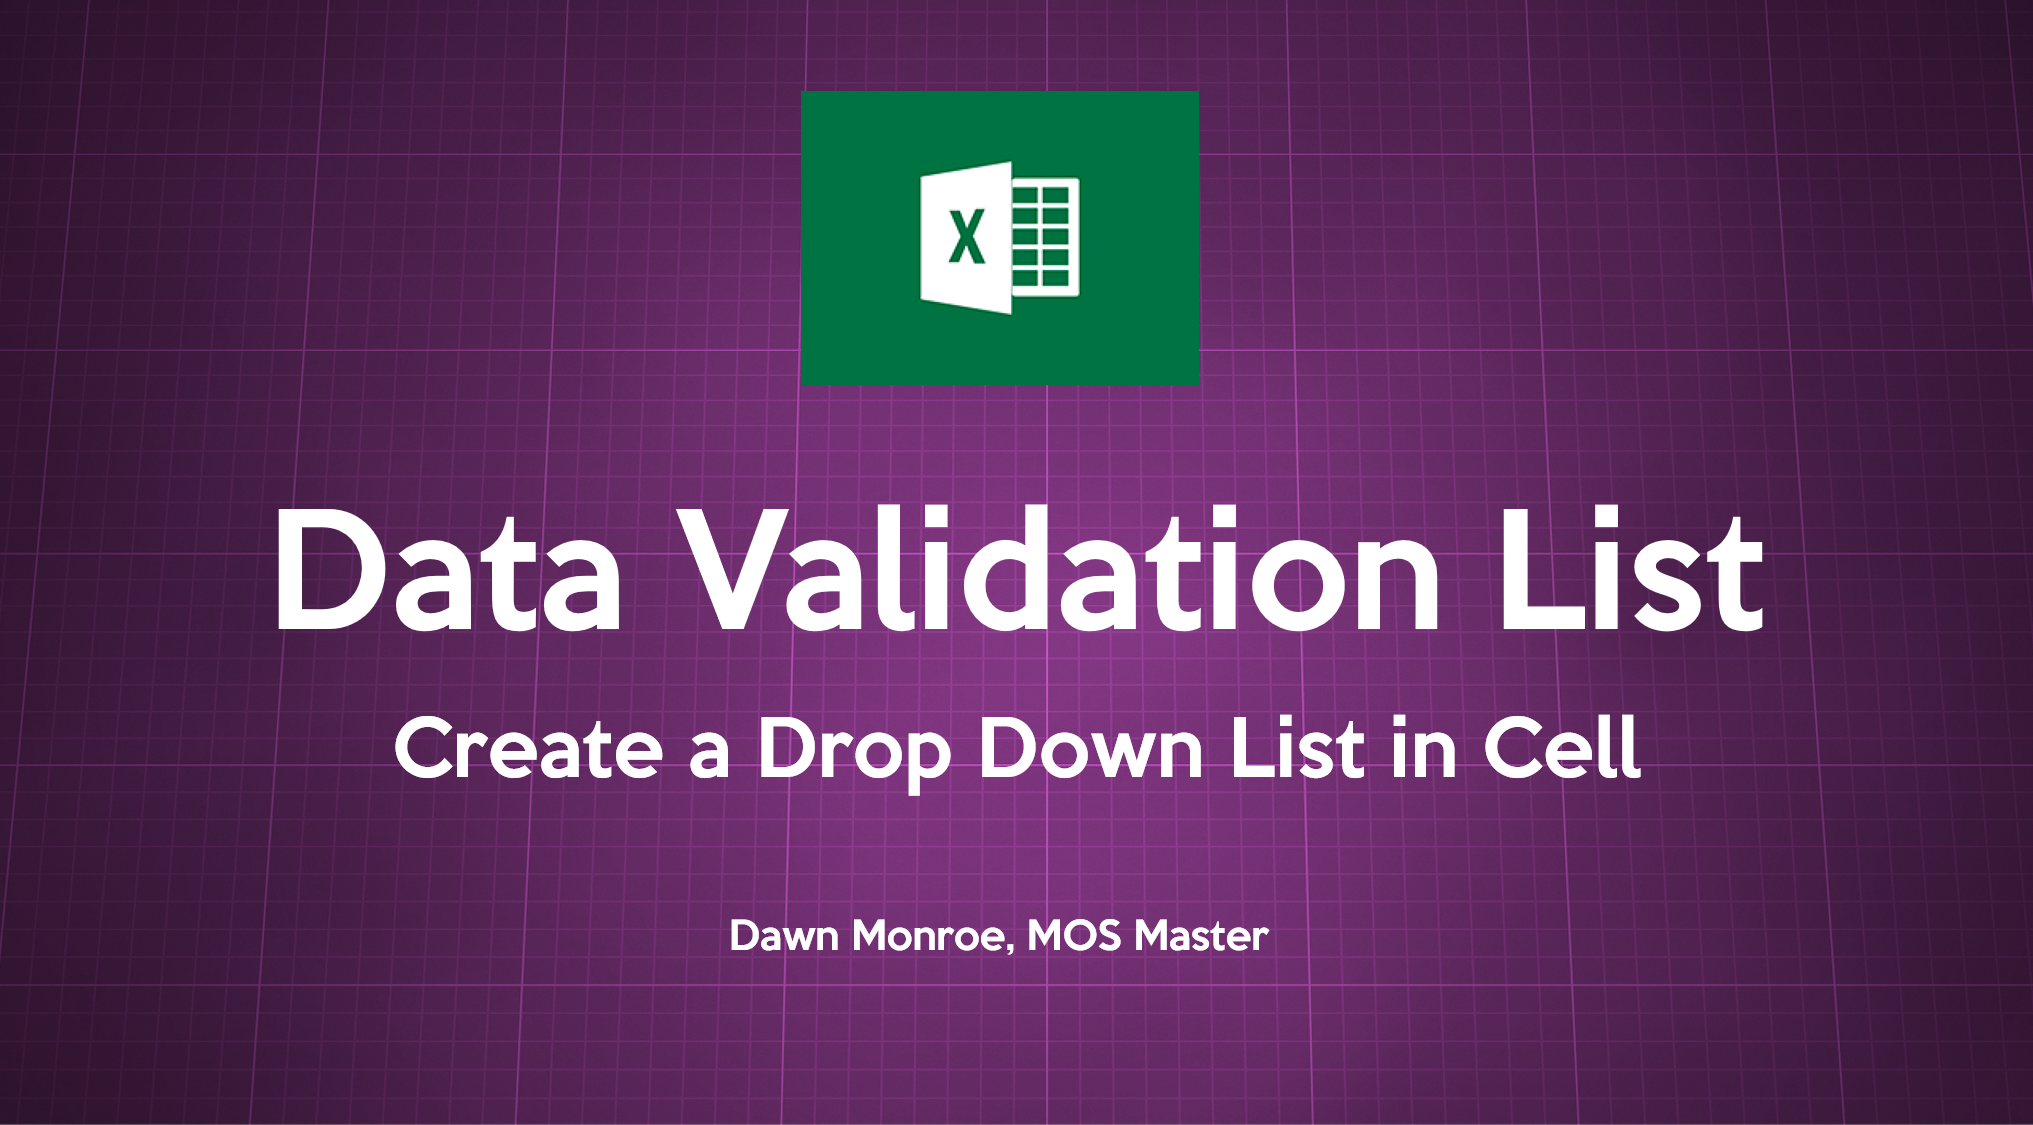 Data Validation List